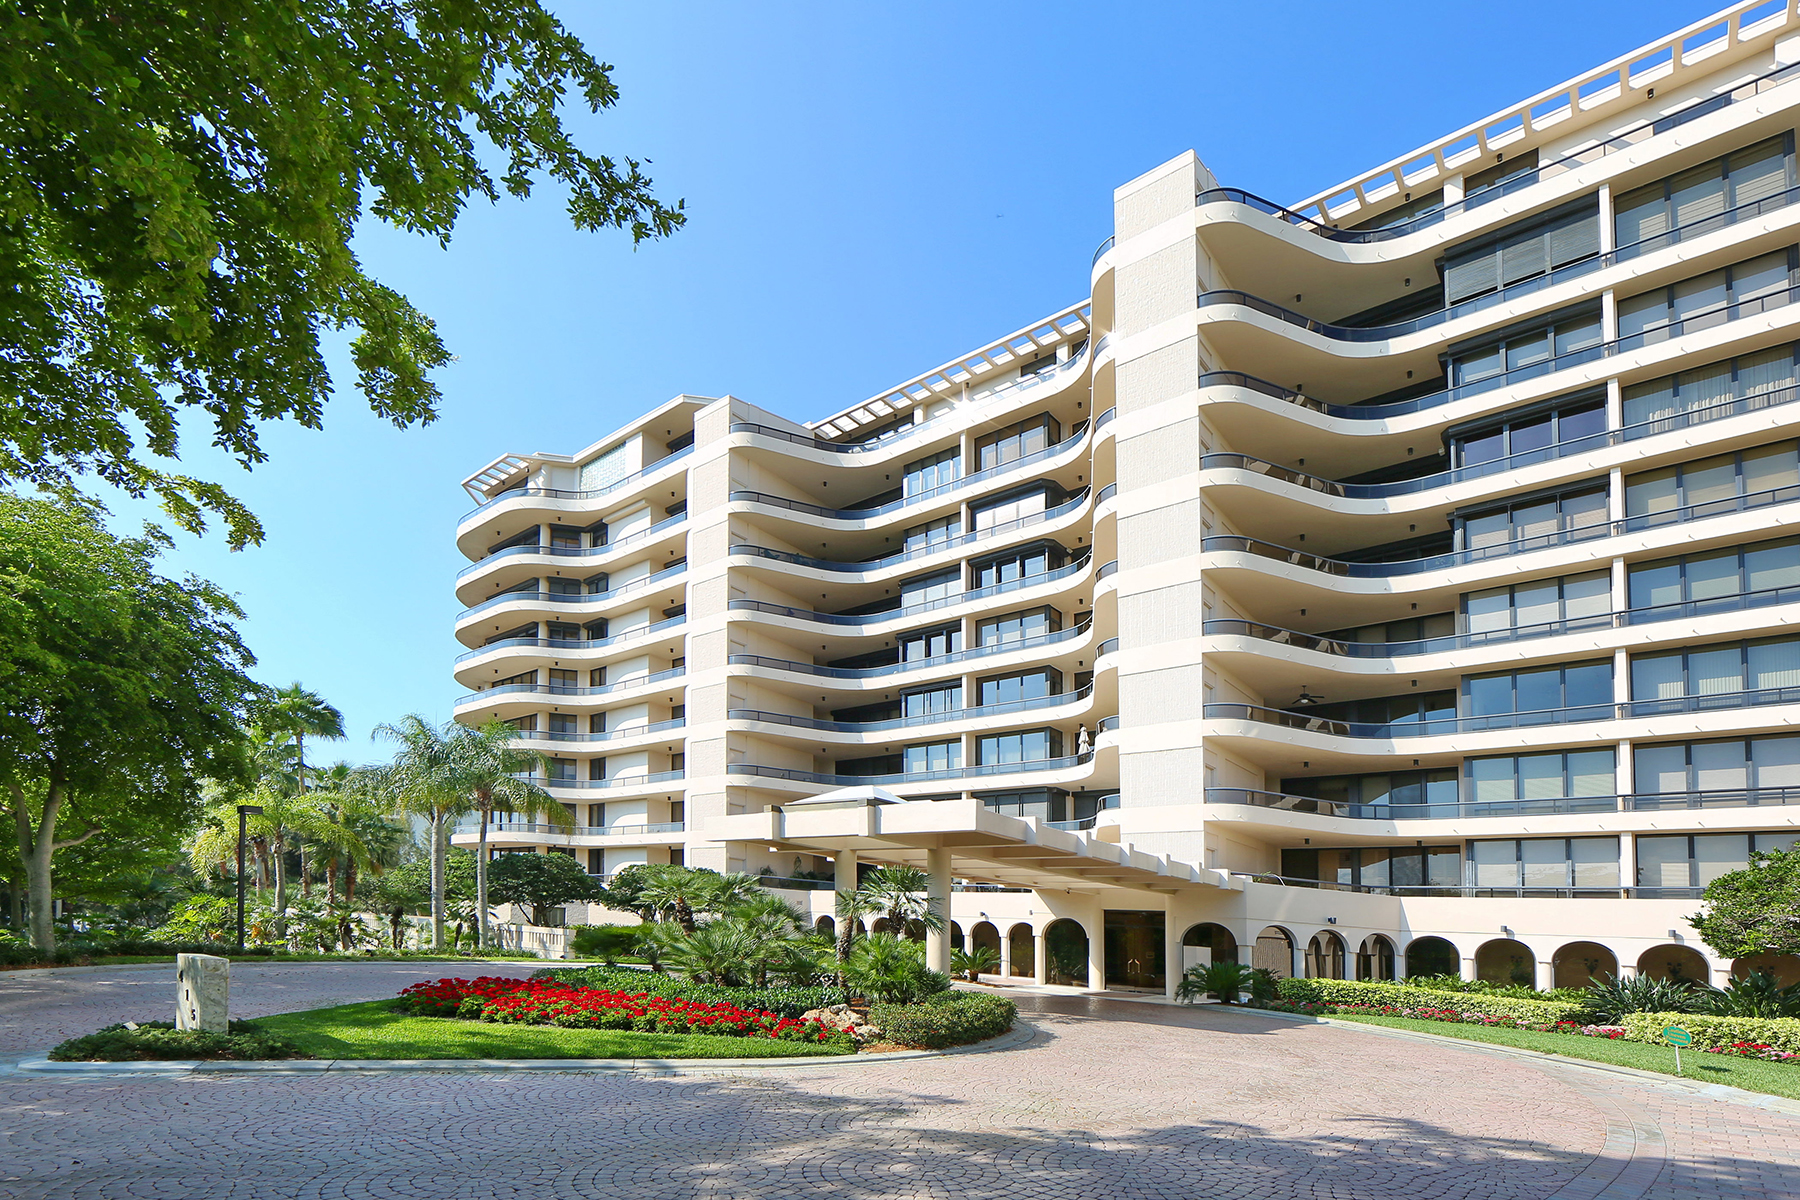 Condominium for Sale at L AMBIANCE AT LONGBOAT KEY 415 L Ambiance Dr C704-5, Longboat Key, Florida 34228 United States